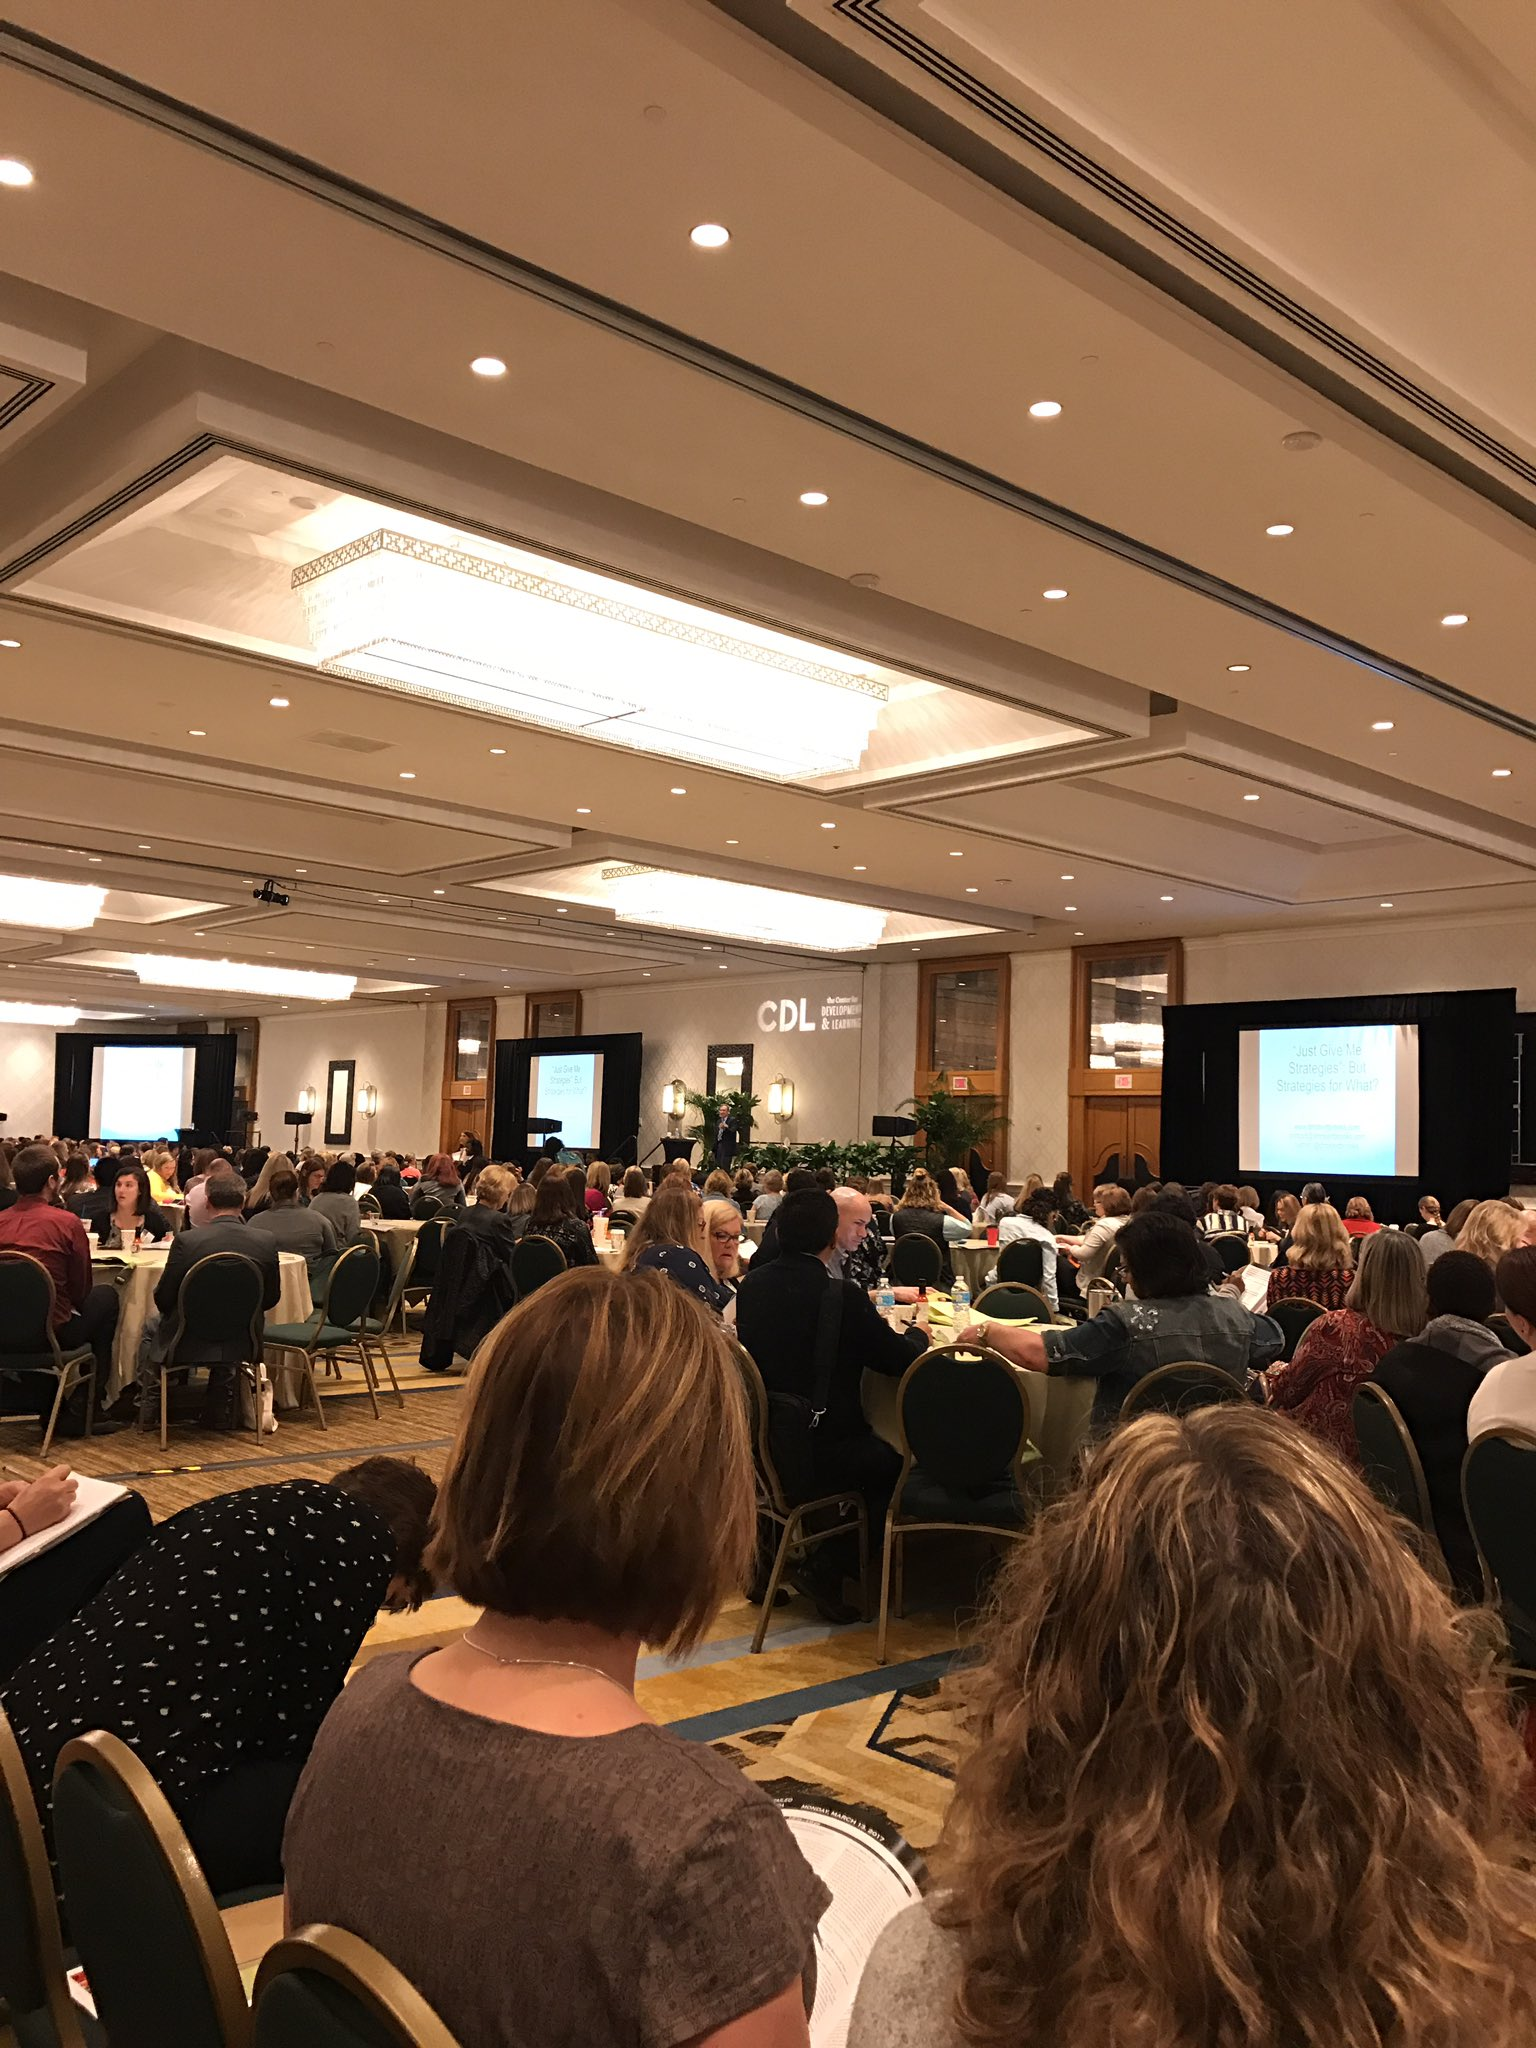 Opening session at #PlainTalkNOLA. Listening to @drrobertbrooks talk about strategies for success. #literacy #PDonSB https://t.co/XezC3Fl0Ab